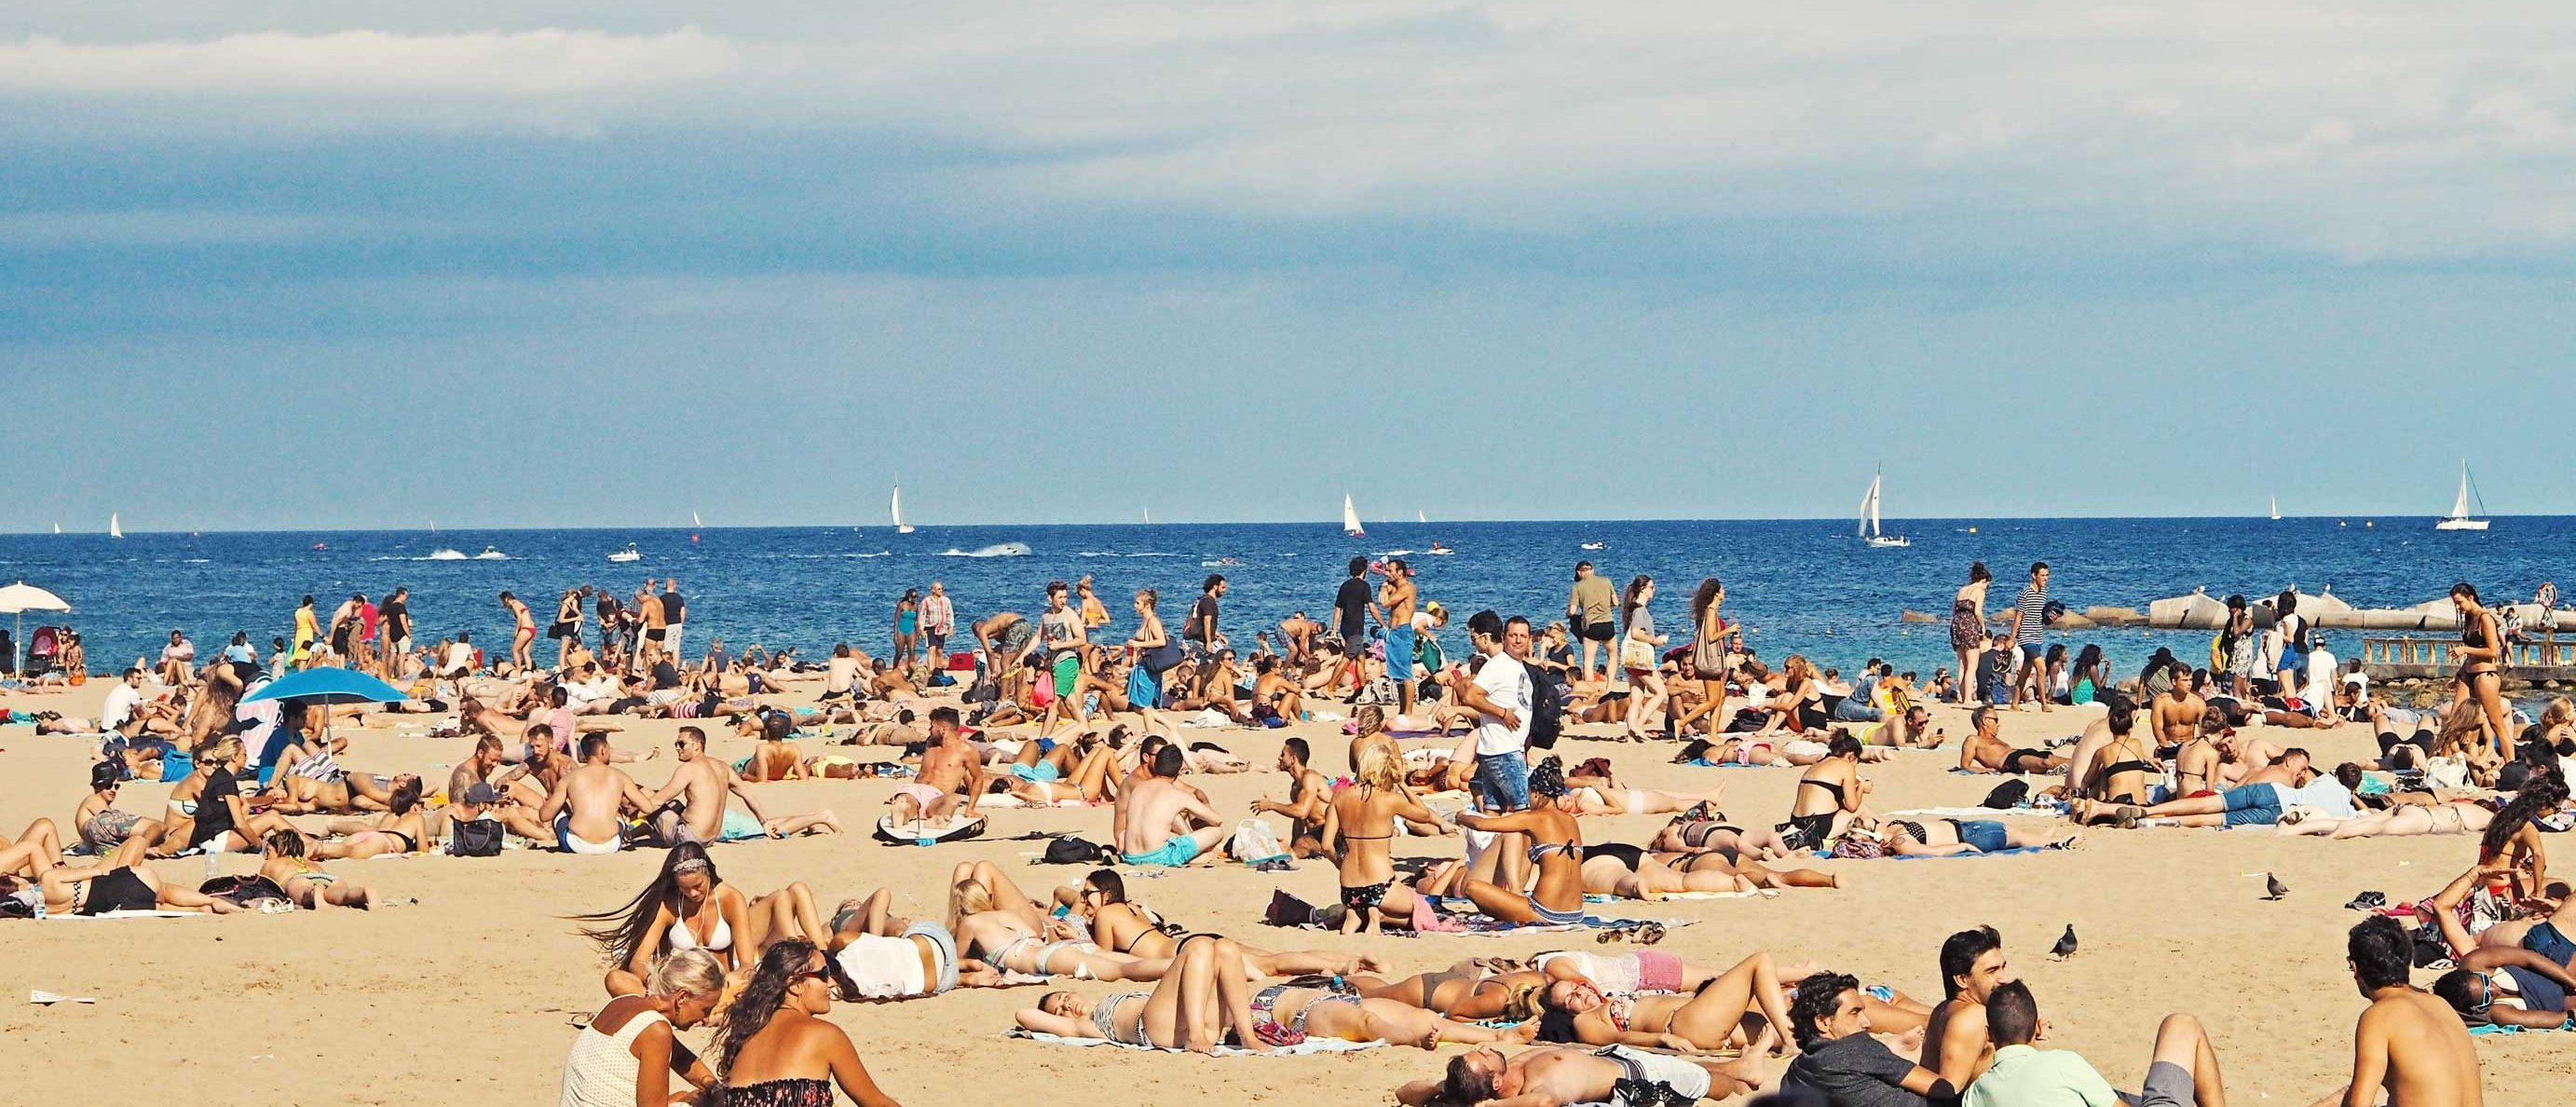 sol, sommer, summer, strand, beach, sand, people, solbadning